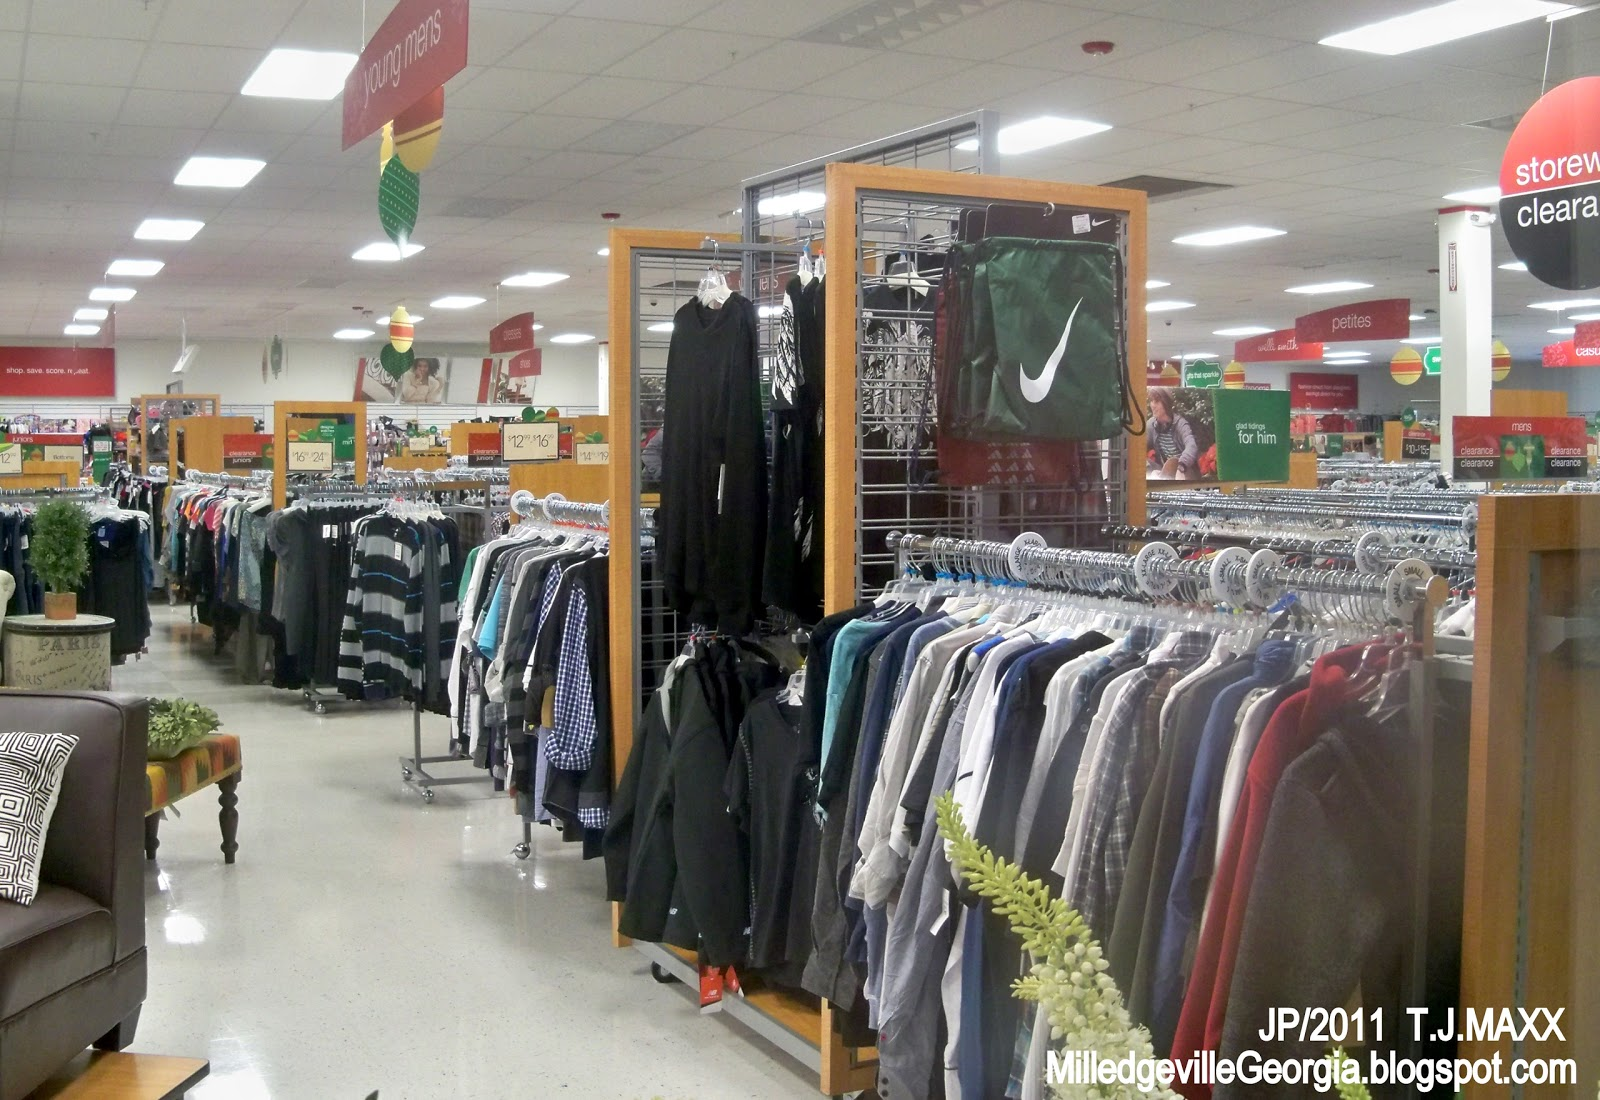 Clothing stores at the mall